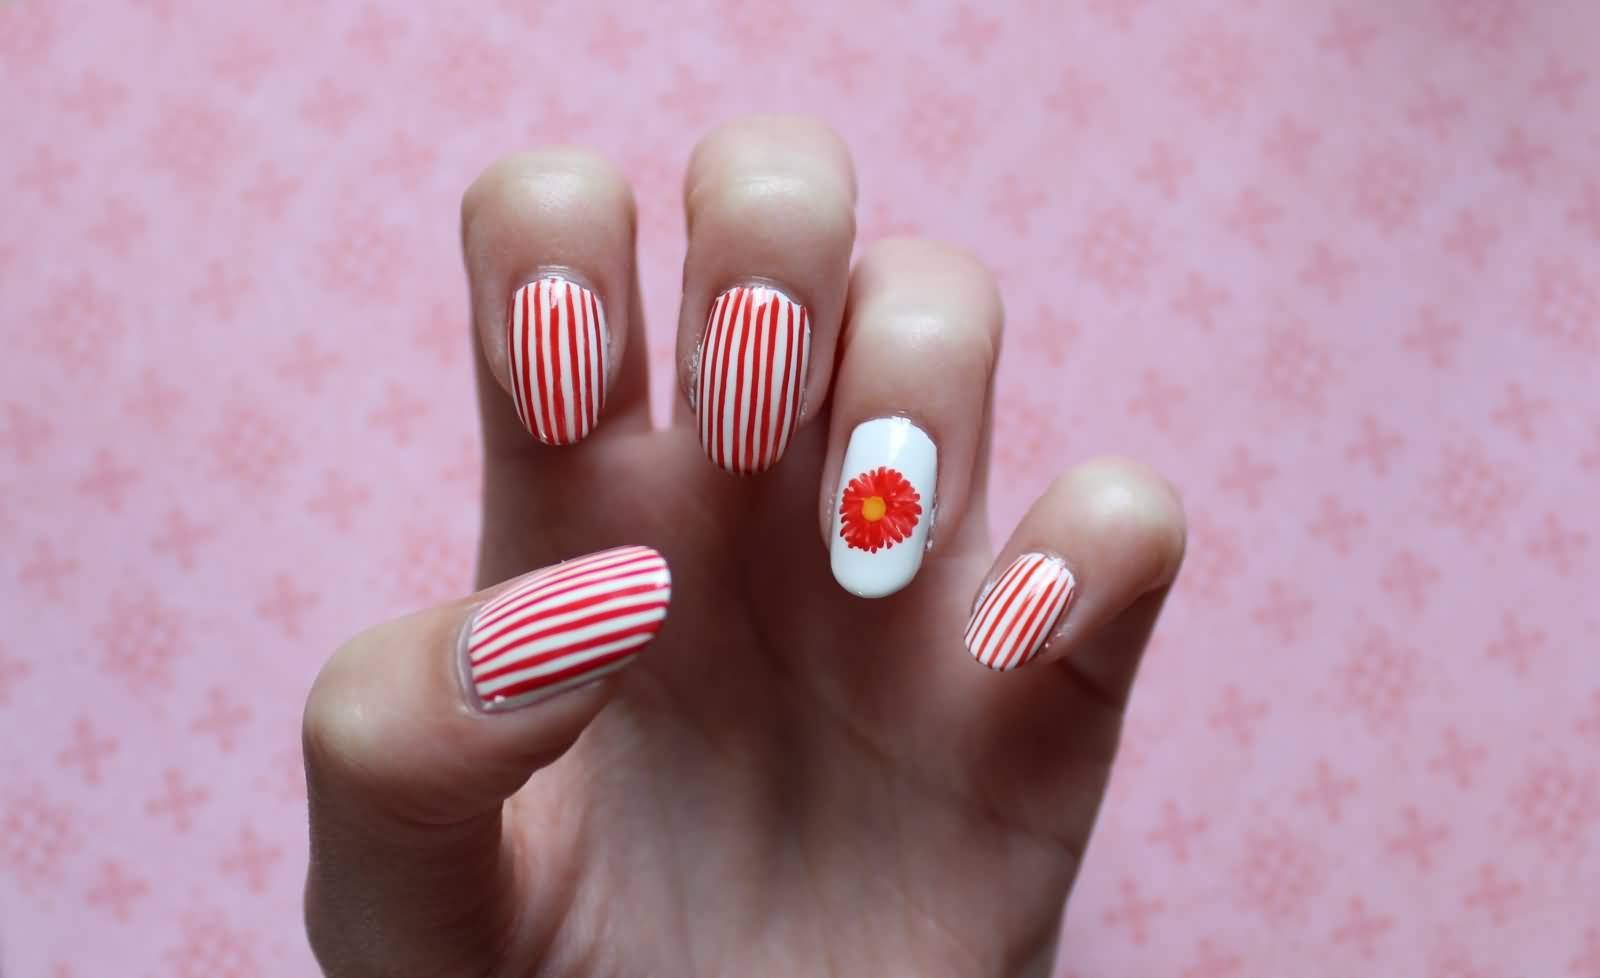 Ultimate Red And White Stripes With Flower Accent Nail Art